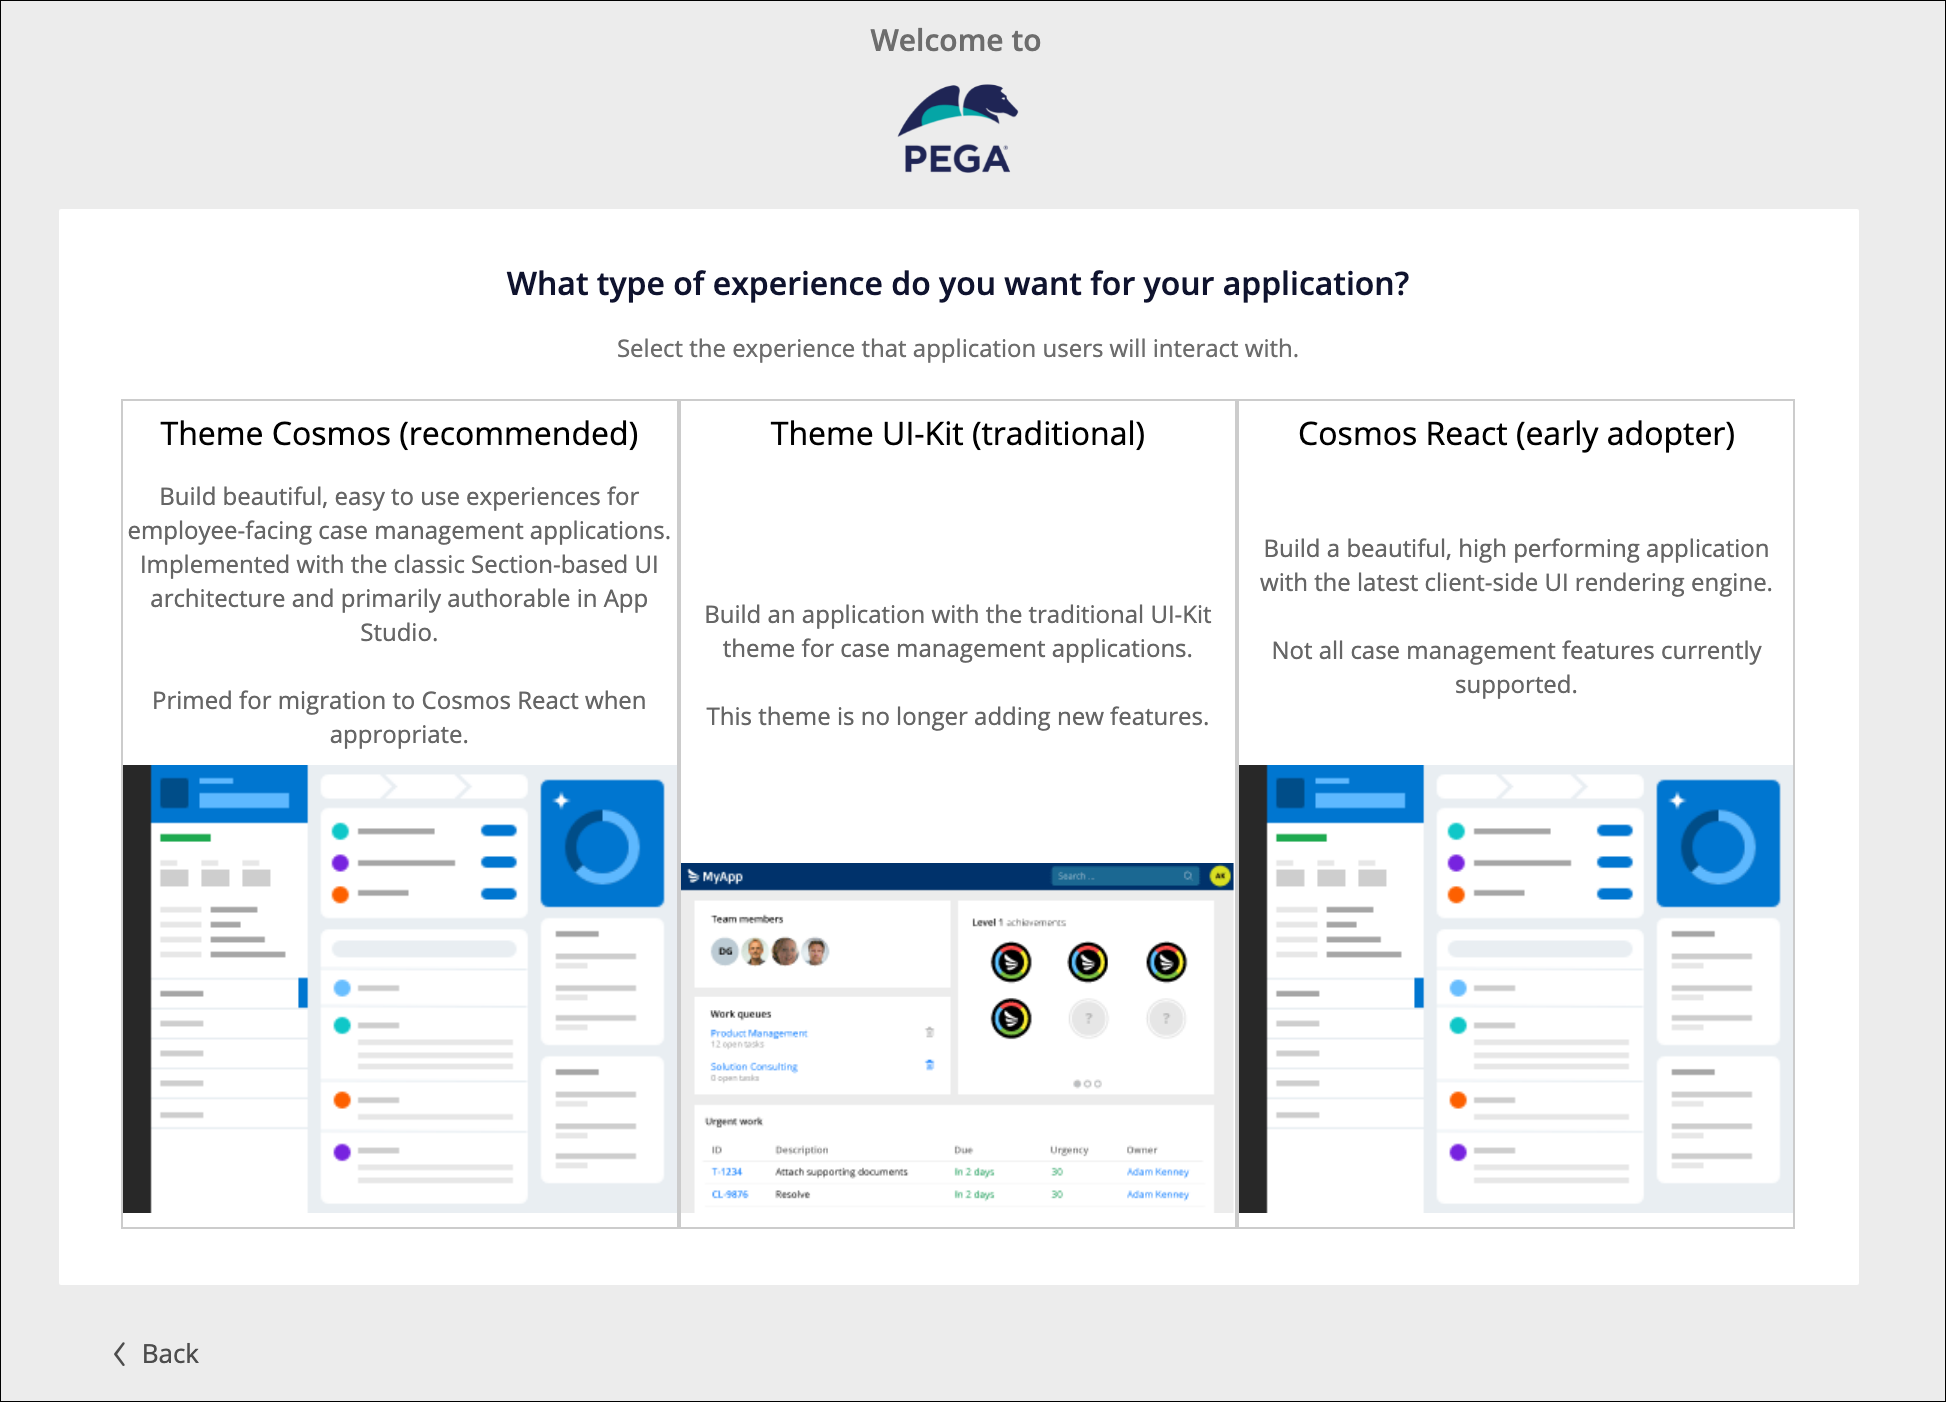 The new application wizard with three available options: Theme Cosmos, Theme UI-Kit, and Cosmos React.